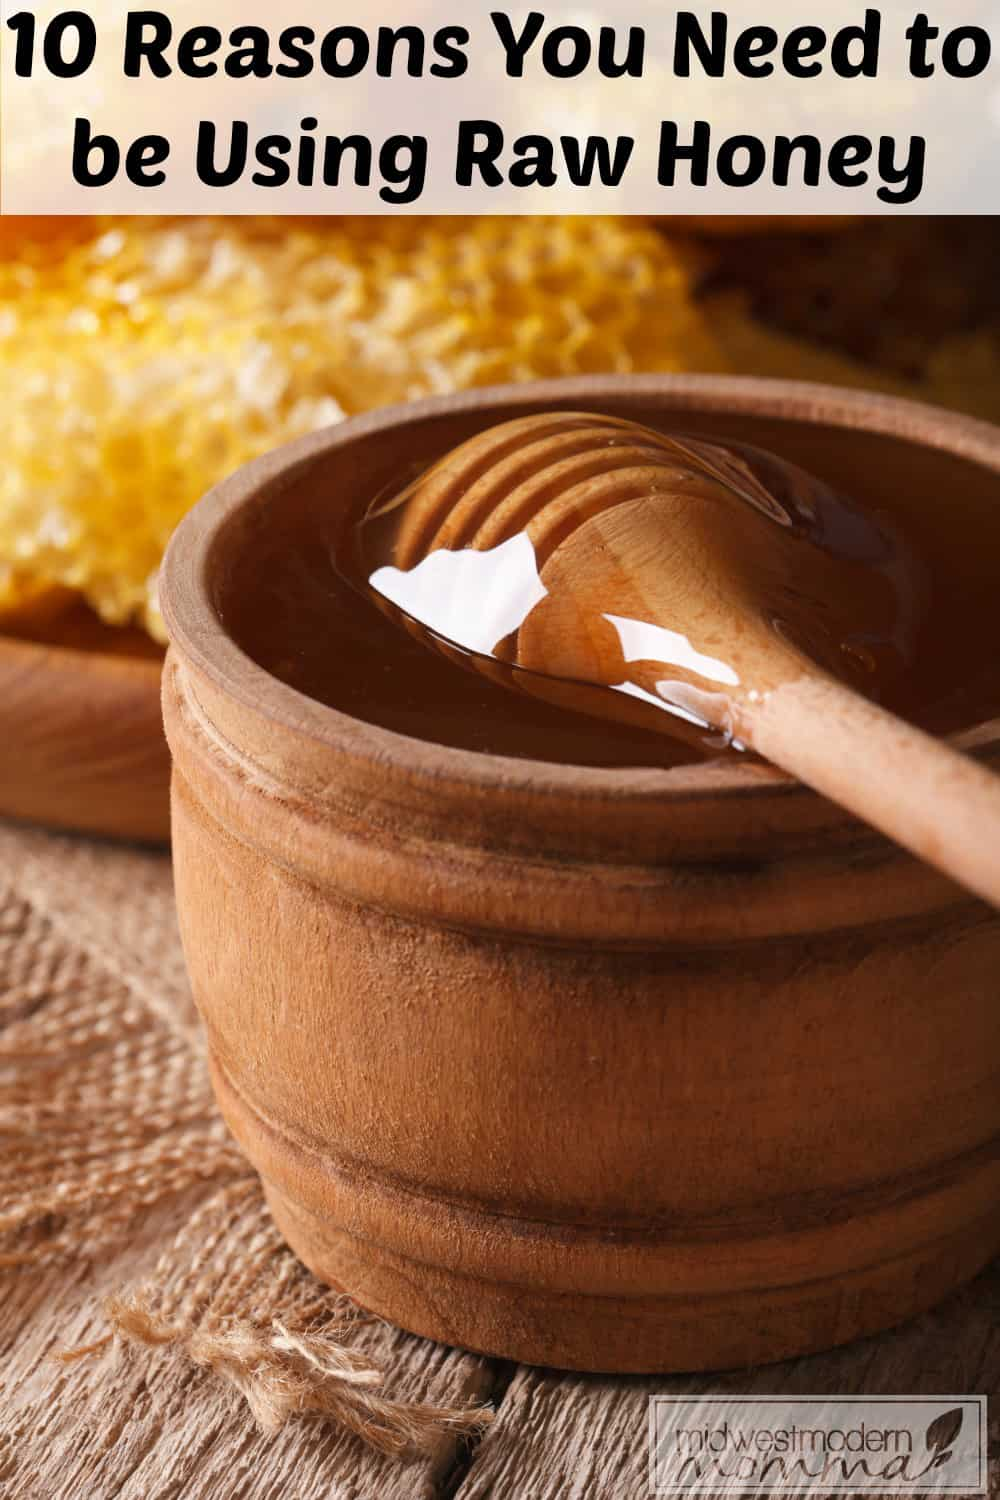 The benefits of using raw honey are pretty much endless and it is becoming more popular as people start to pay attention to what is in their food. Buying honey off of the shelves isn't even an option once you have given raw honey a chance!